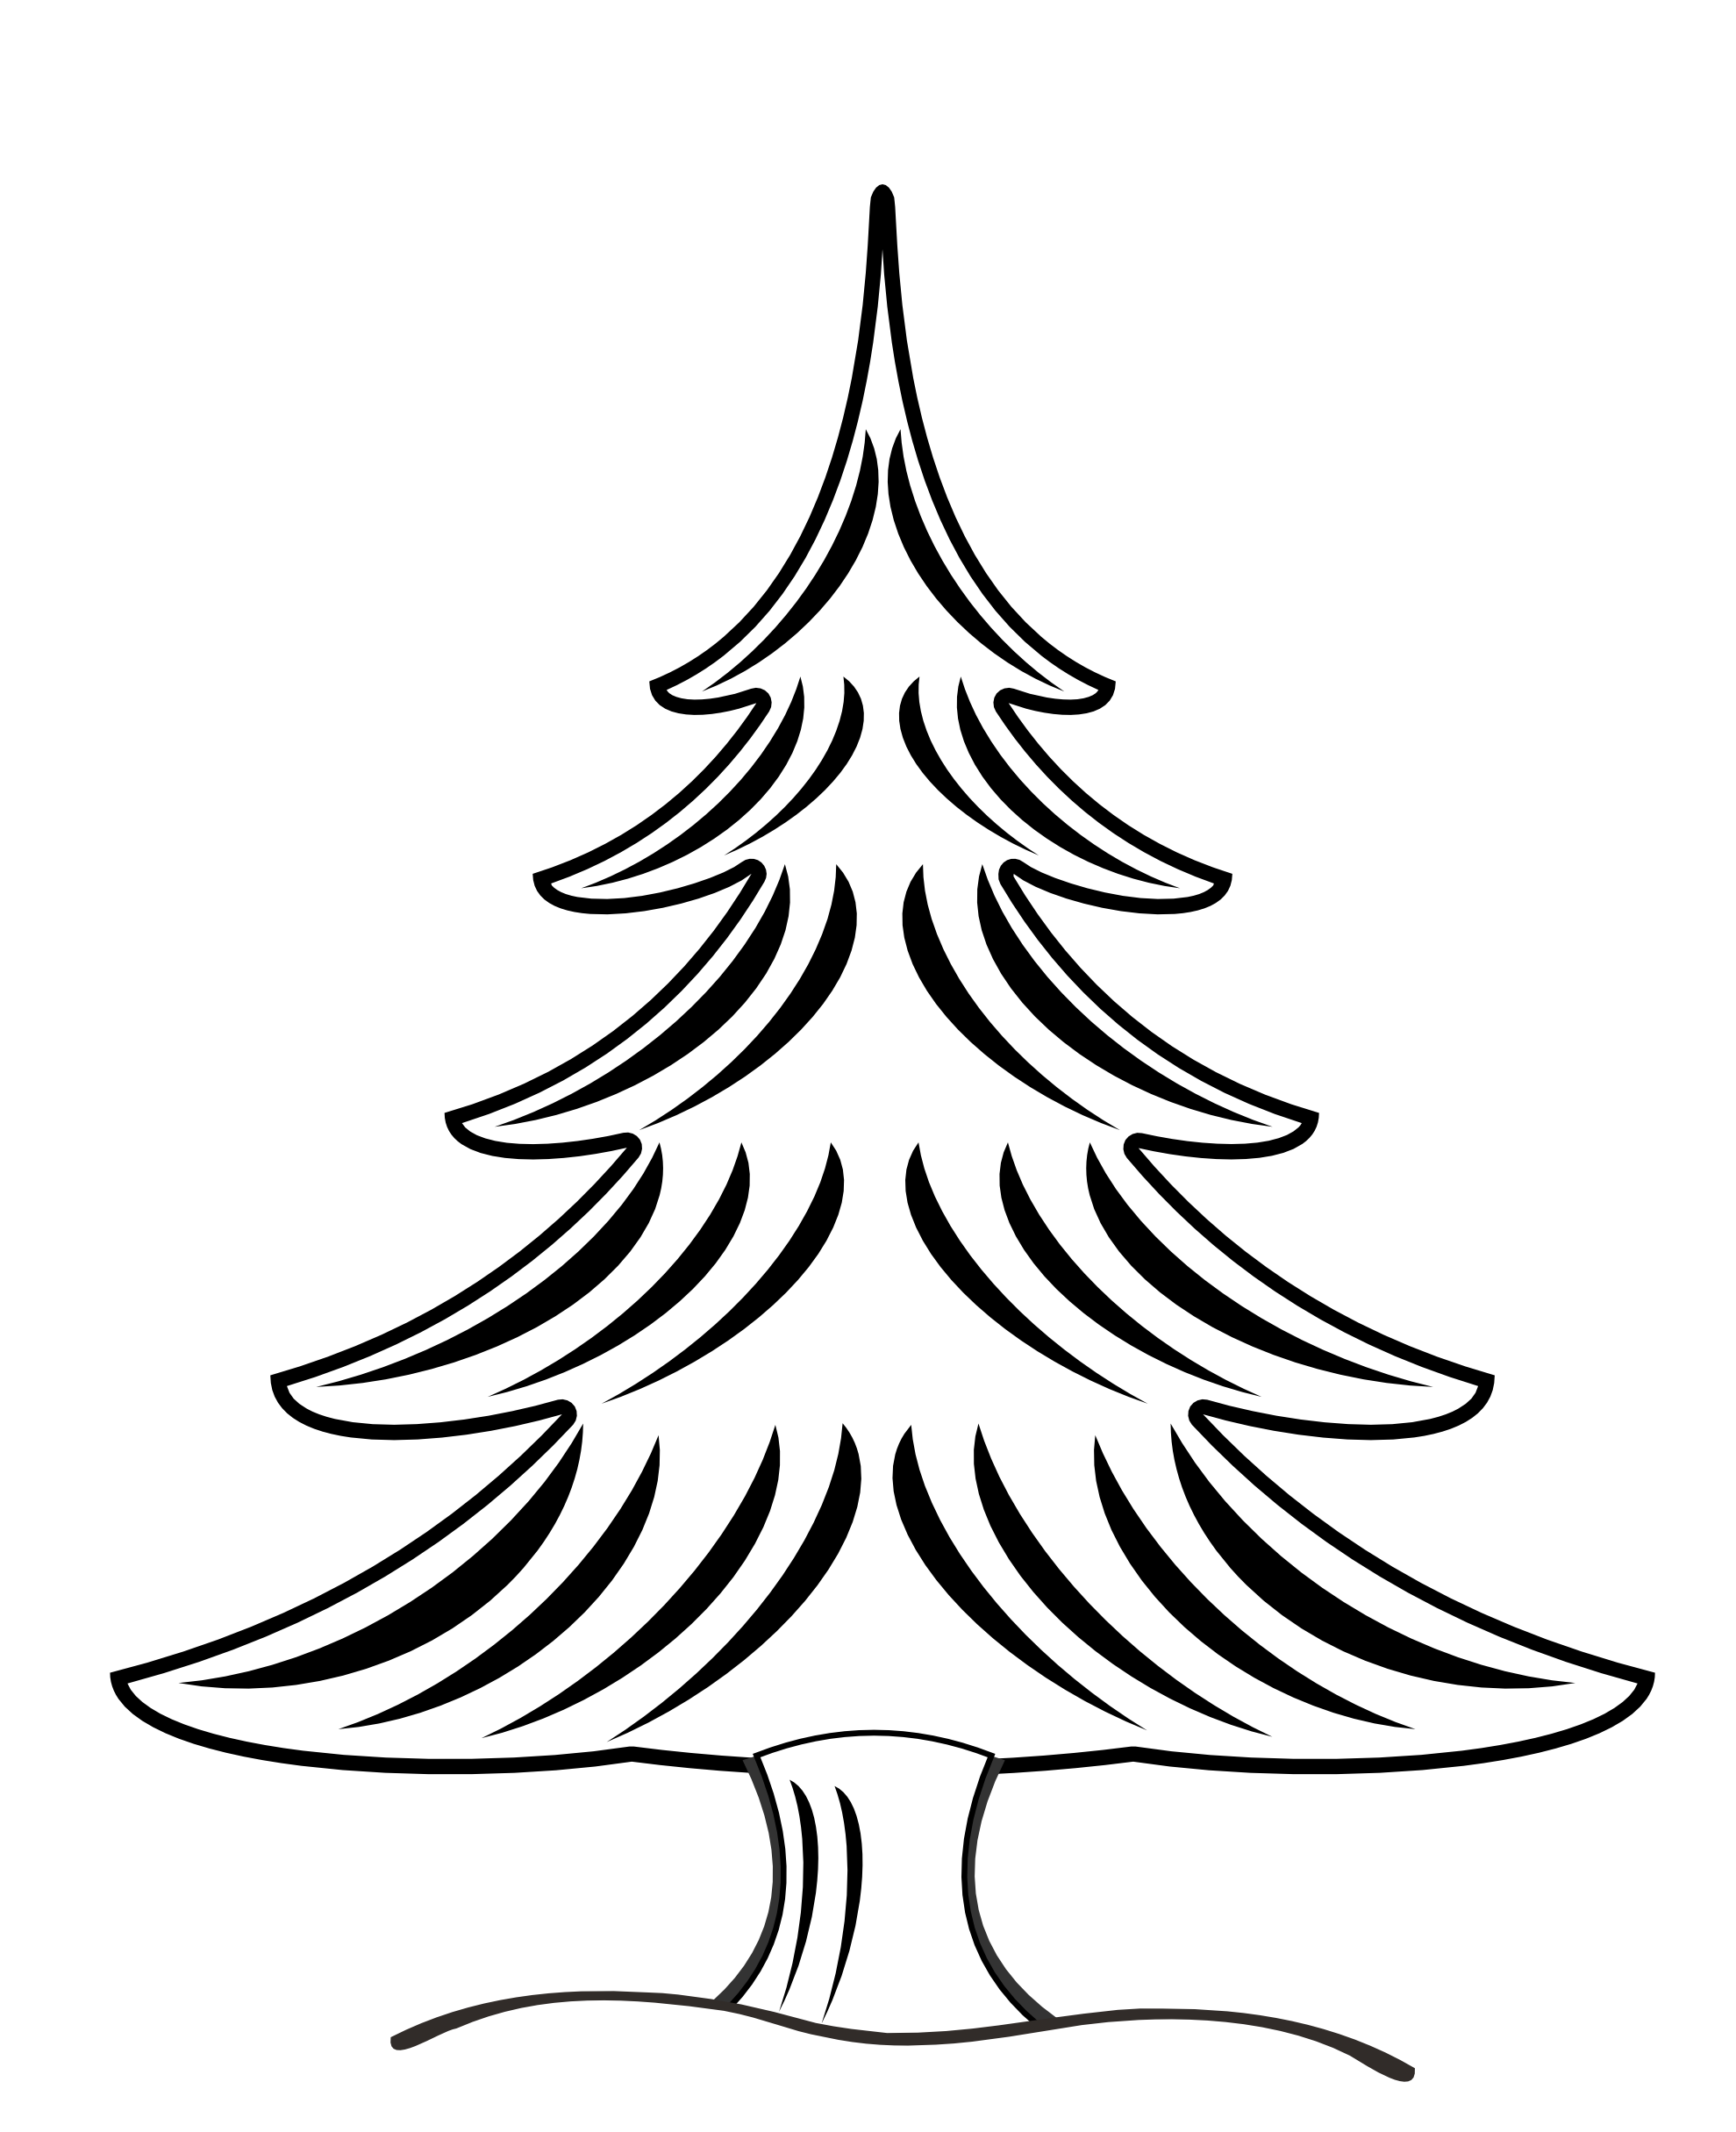 Christmas Tree clipart black and white Trees Clipartix art clipart black